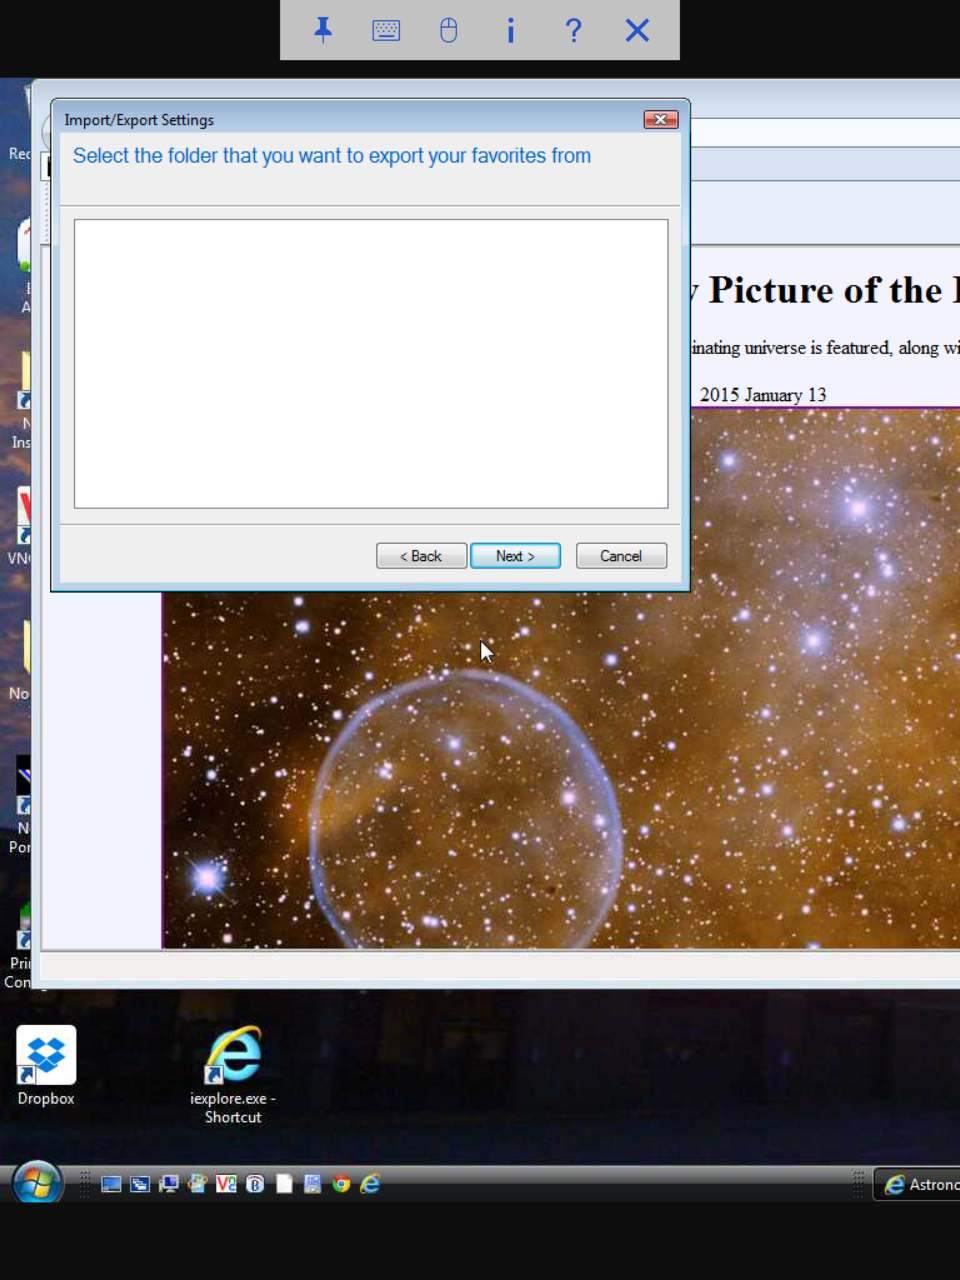 Blank screen looking for what was given in previous screen.  Perhaps IE9 can't find it either.